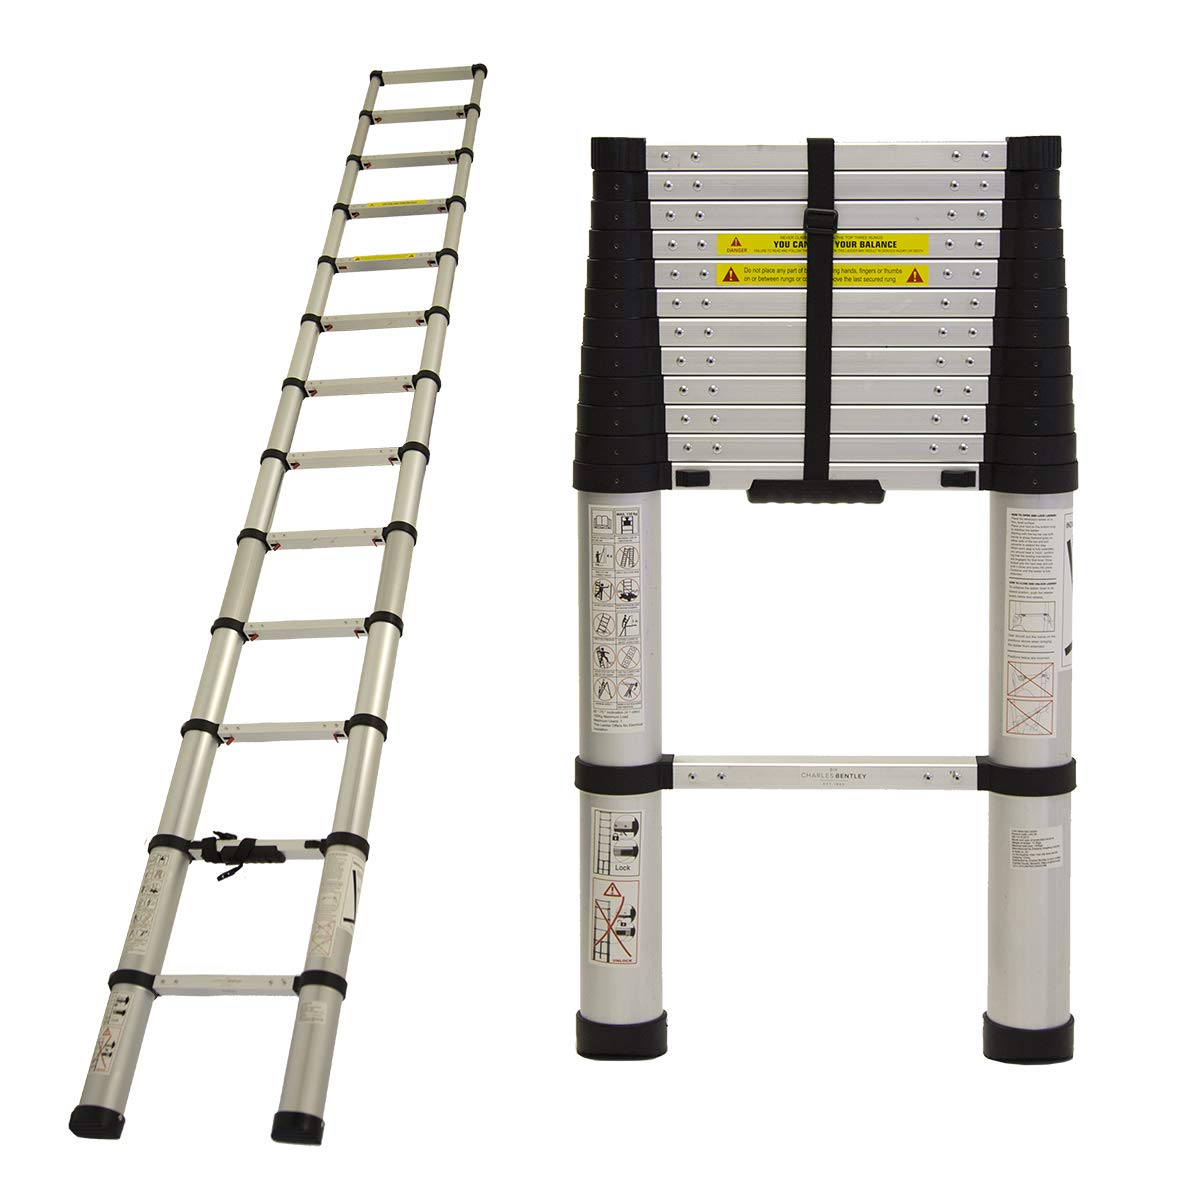 Charles Bentley 3.8M Telescopic Extendable Ladder - Soft Close Anti Pinch Finger Protection